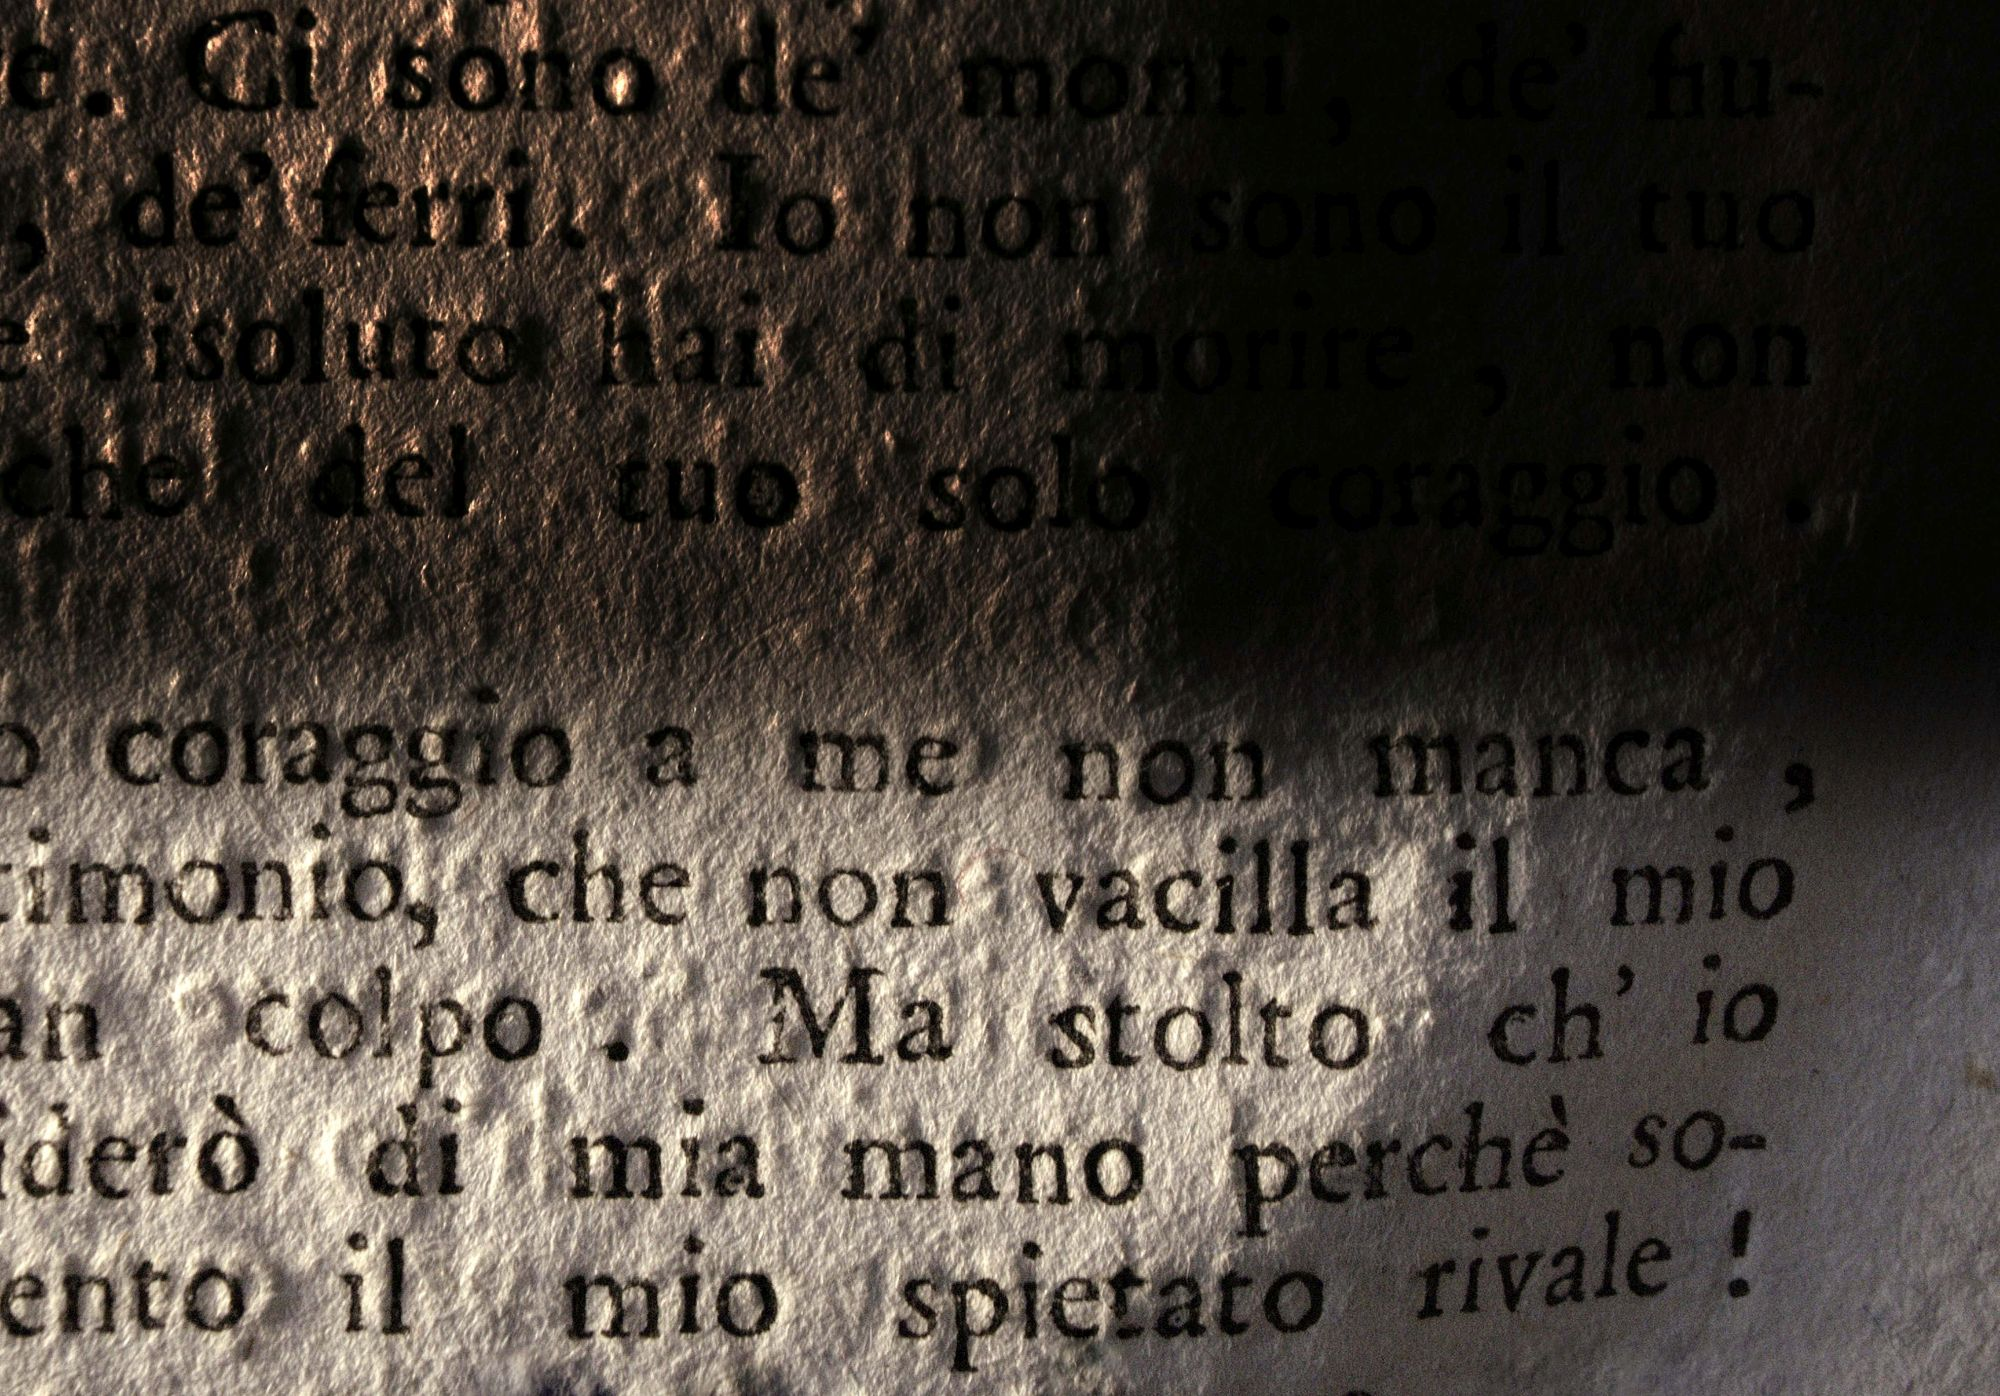 Words #30, Coraggio/Courage, 2013